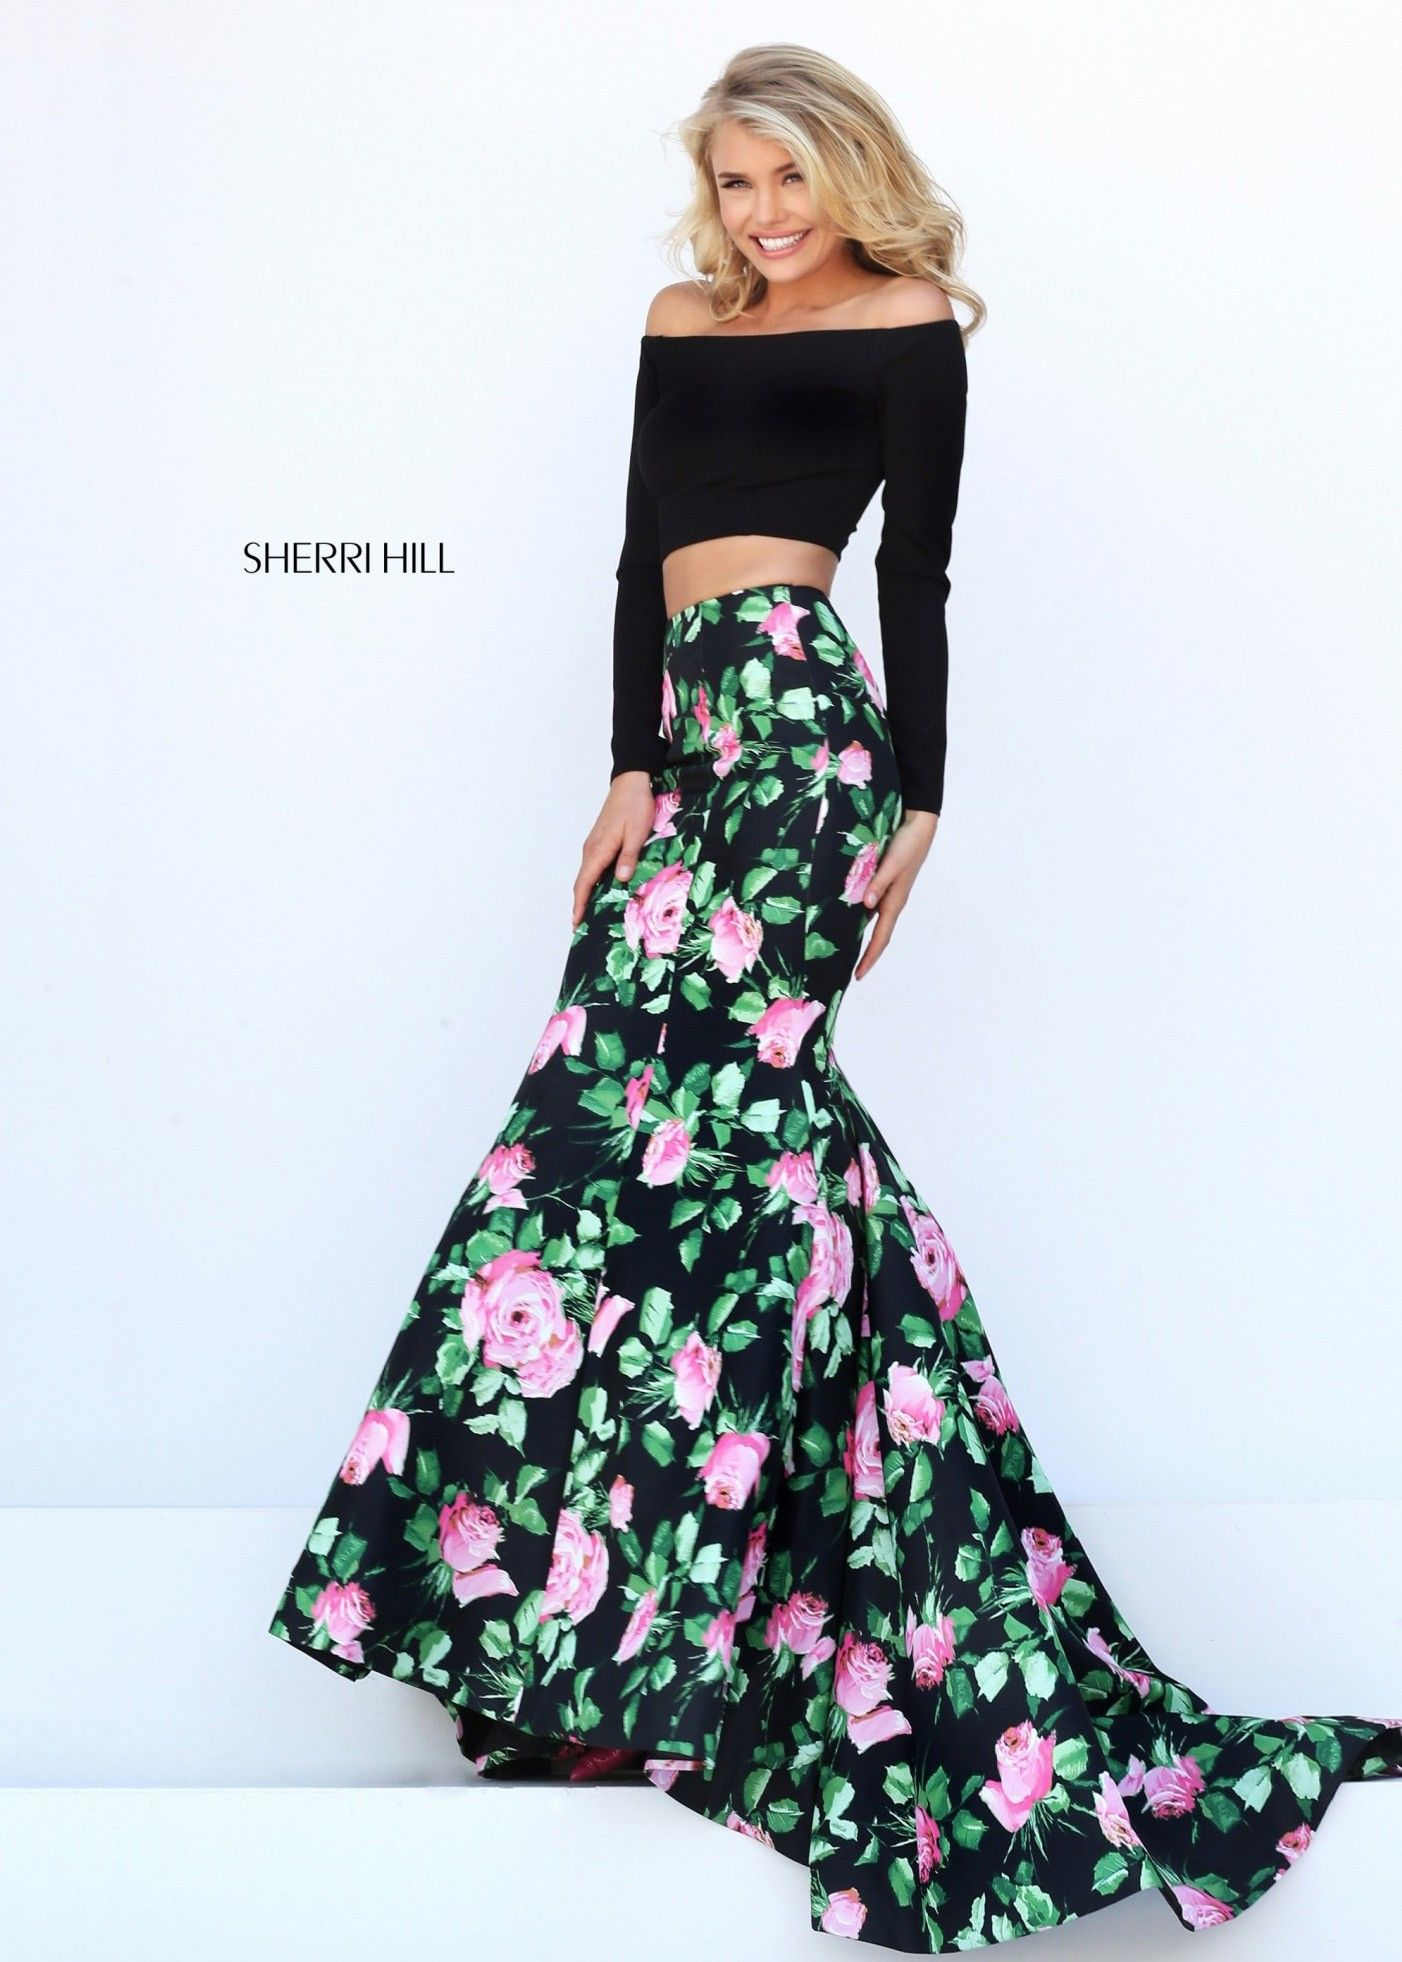 Sherri hill 50423 blackpink sleek sexy 2 piece mermaid dress sherri hill 50423 blackpink sleek sexy 2 piece mermaid dress ombrellifo Images